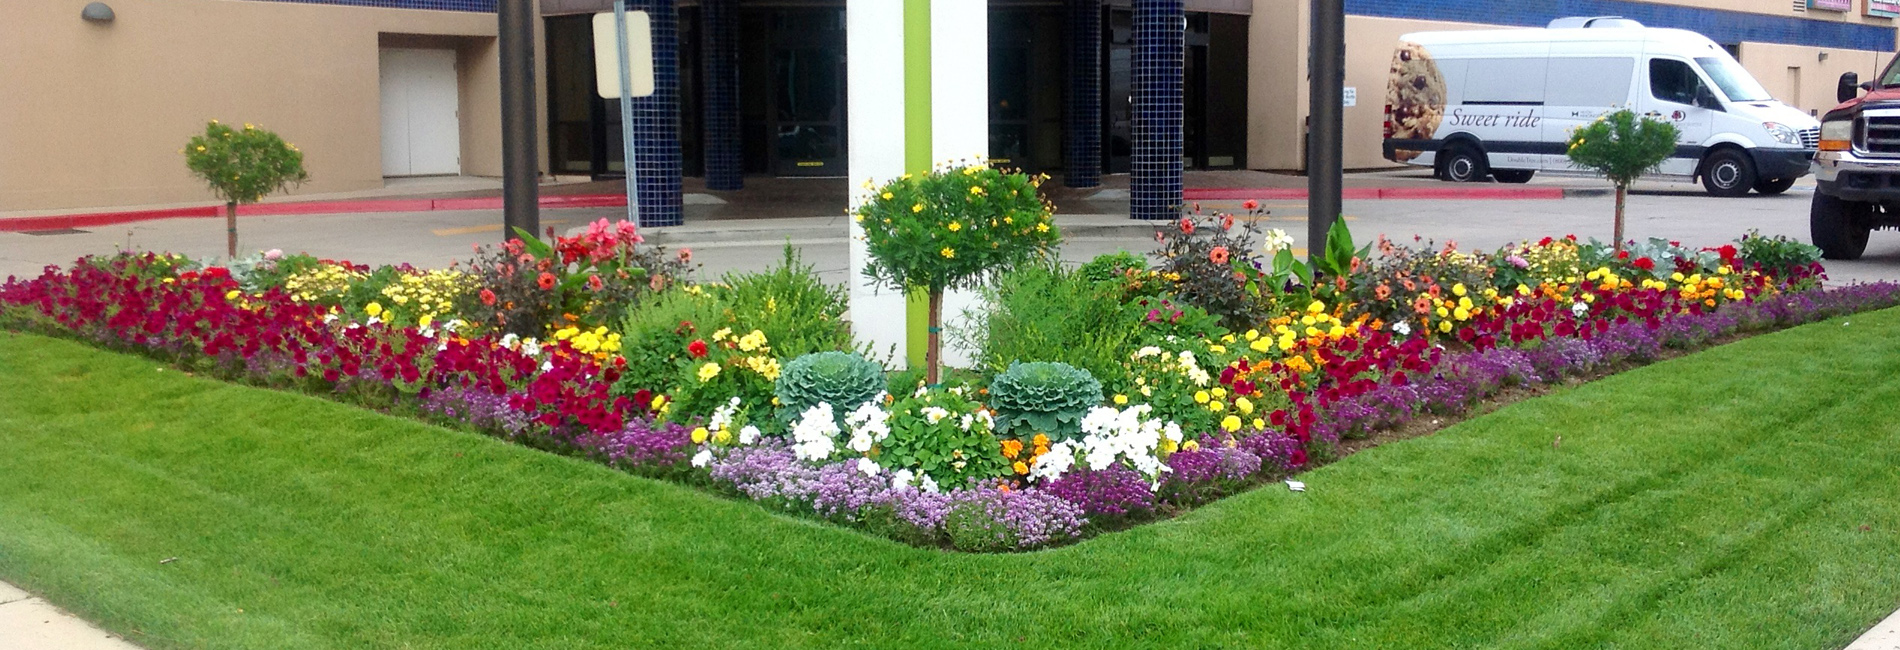 Commercial Residential Landscaping Services In New